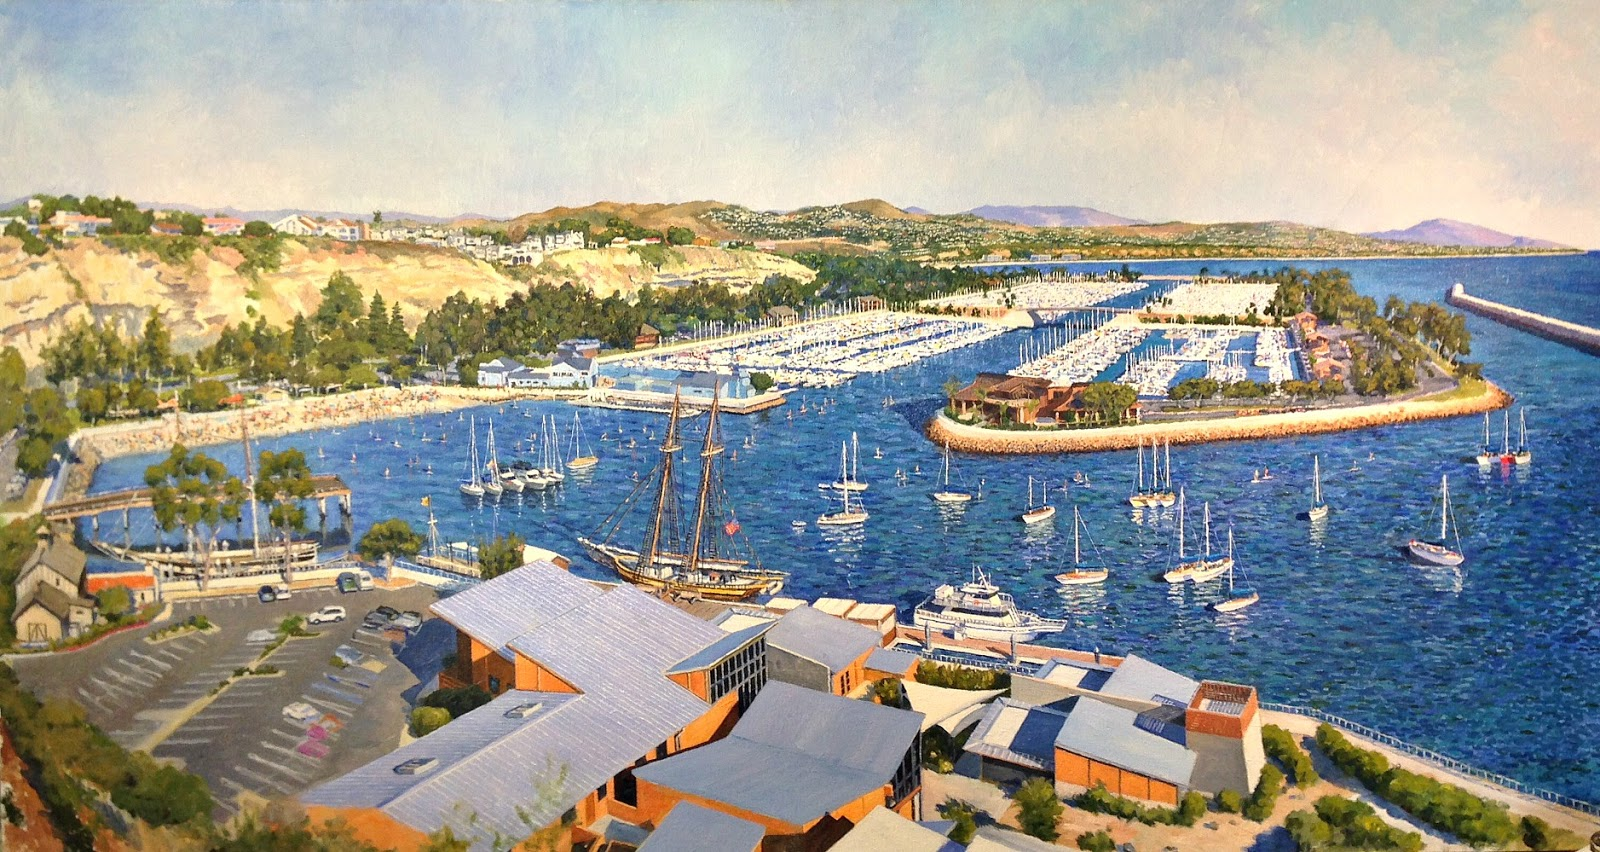 Paul Gavin's painting of Dana Point Harbor from above OCMarine Institute done 25 years after his first piece from the same location